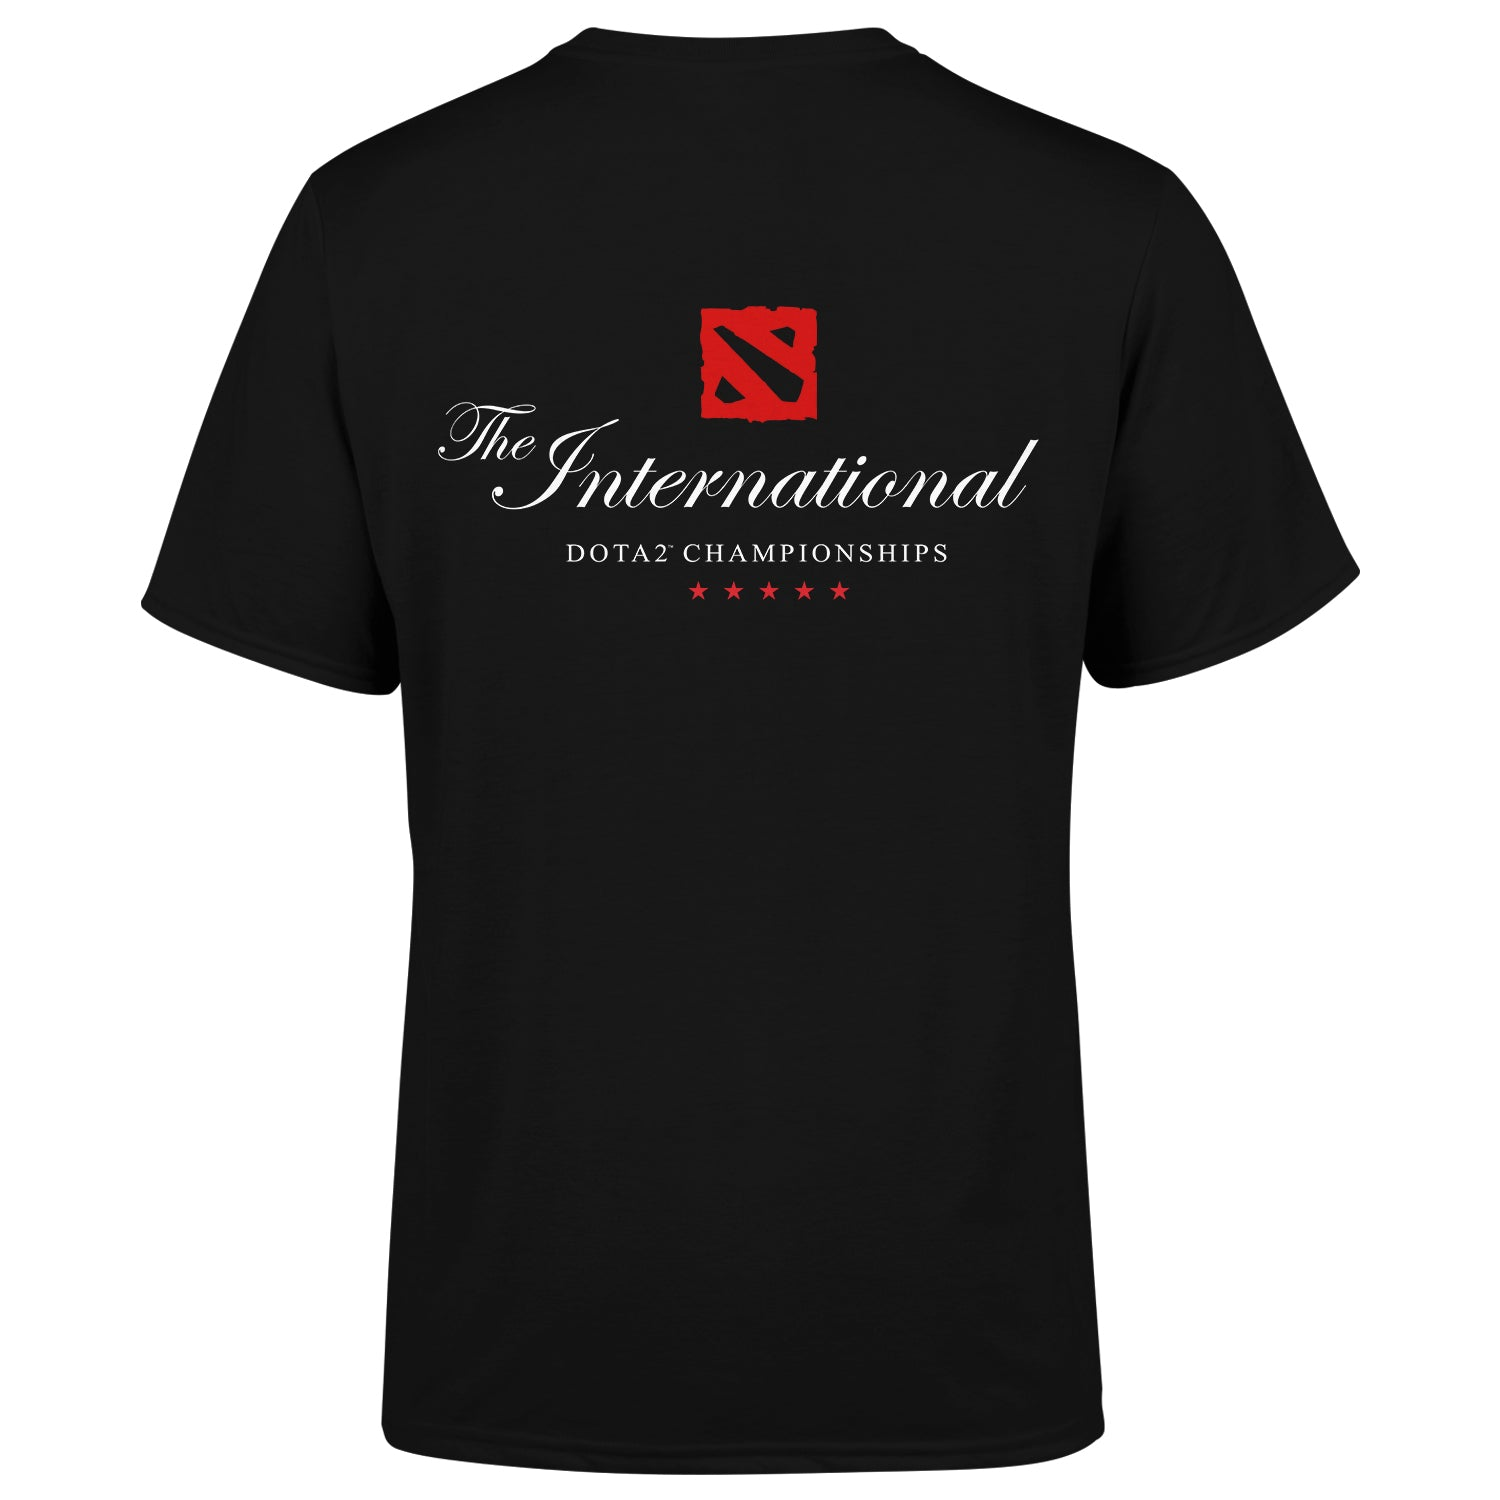 Dota 2: The International